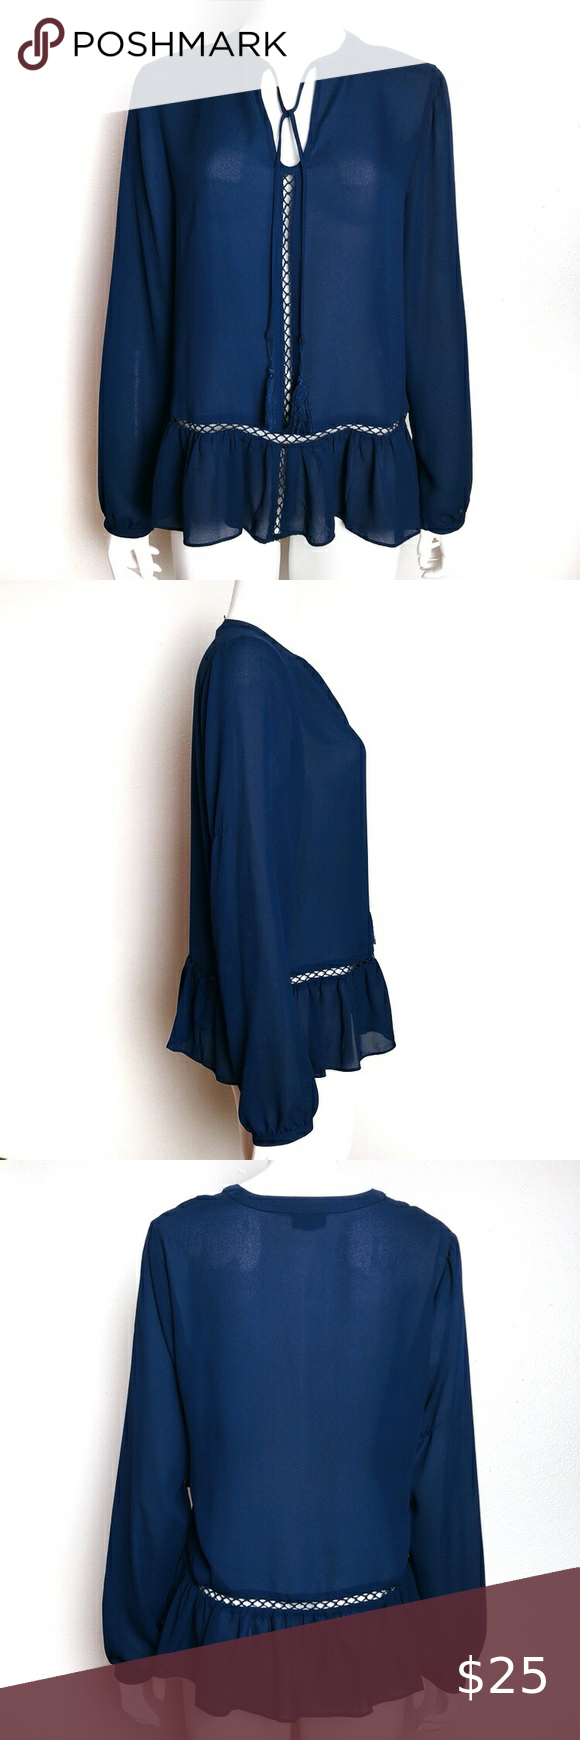 New! a.n.a Navy Blue Keyhole Sheer Work Blouse Lovely long sleeve semi sheer work blouse from a.n.a that's perfect for young professionals. Features: light and airy fabric, keyhole neckline with long tasseled strings to tie a bow or tie loosely, slight peplum look, beautiful rich navy blue color. Very nice and sophisticated business casual top, sad it's not my size. Condition: new w tag, no visible flaws Size: L Chest: 21.5 inches across Length: 25 Arms: 24.5 from shoulder Fabric: polyeste